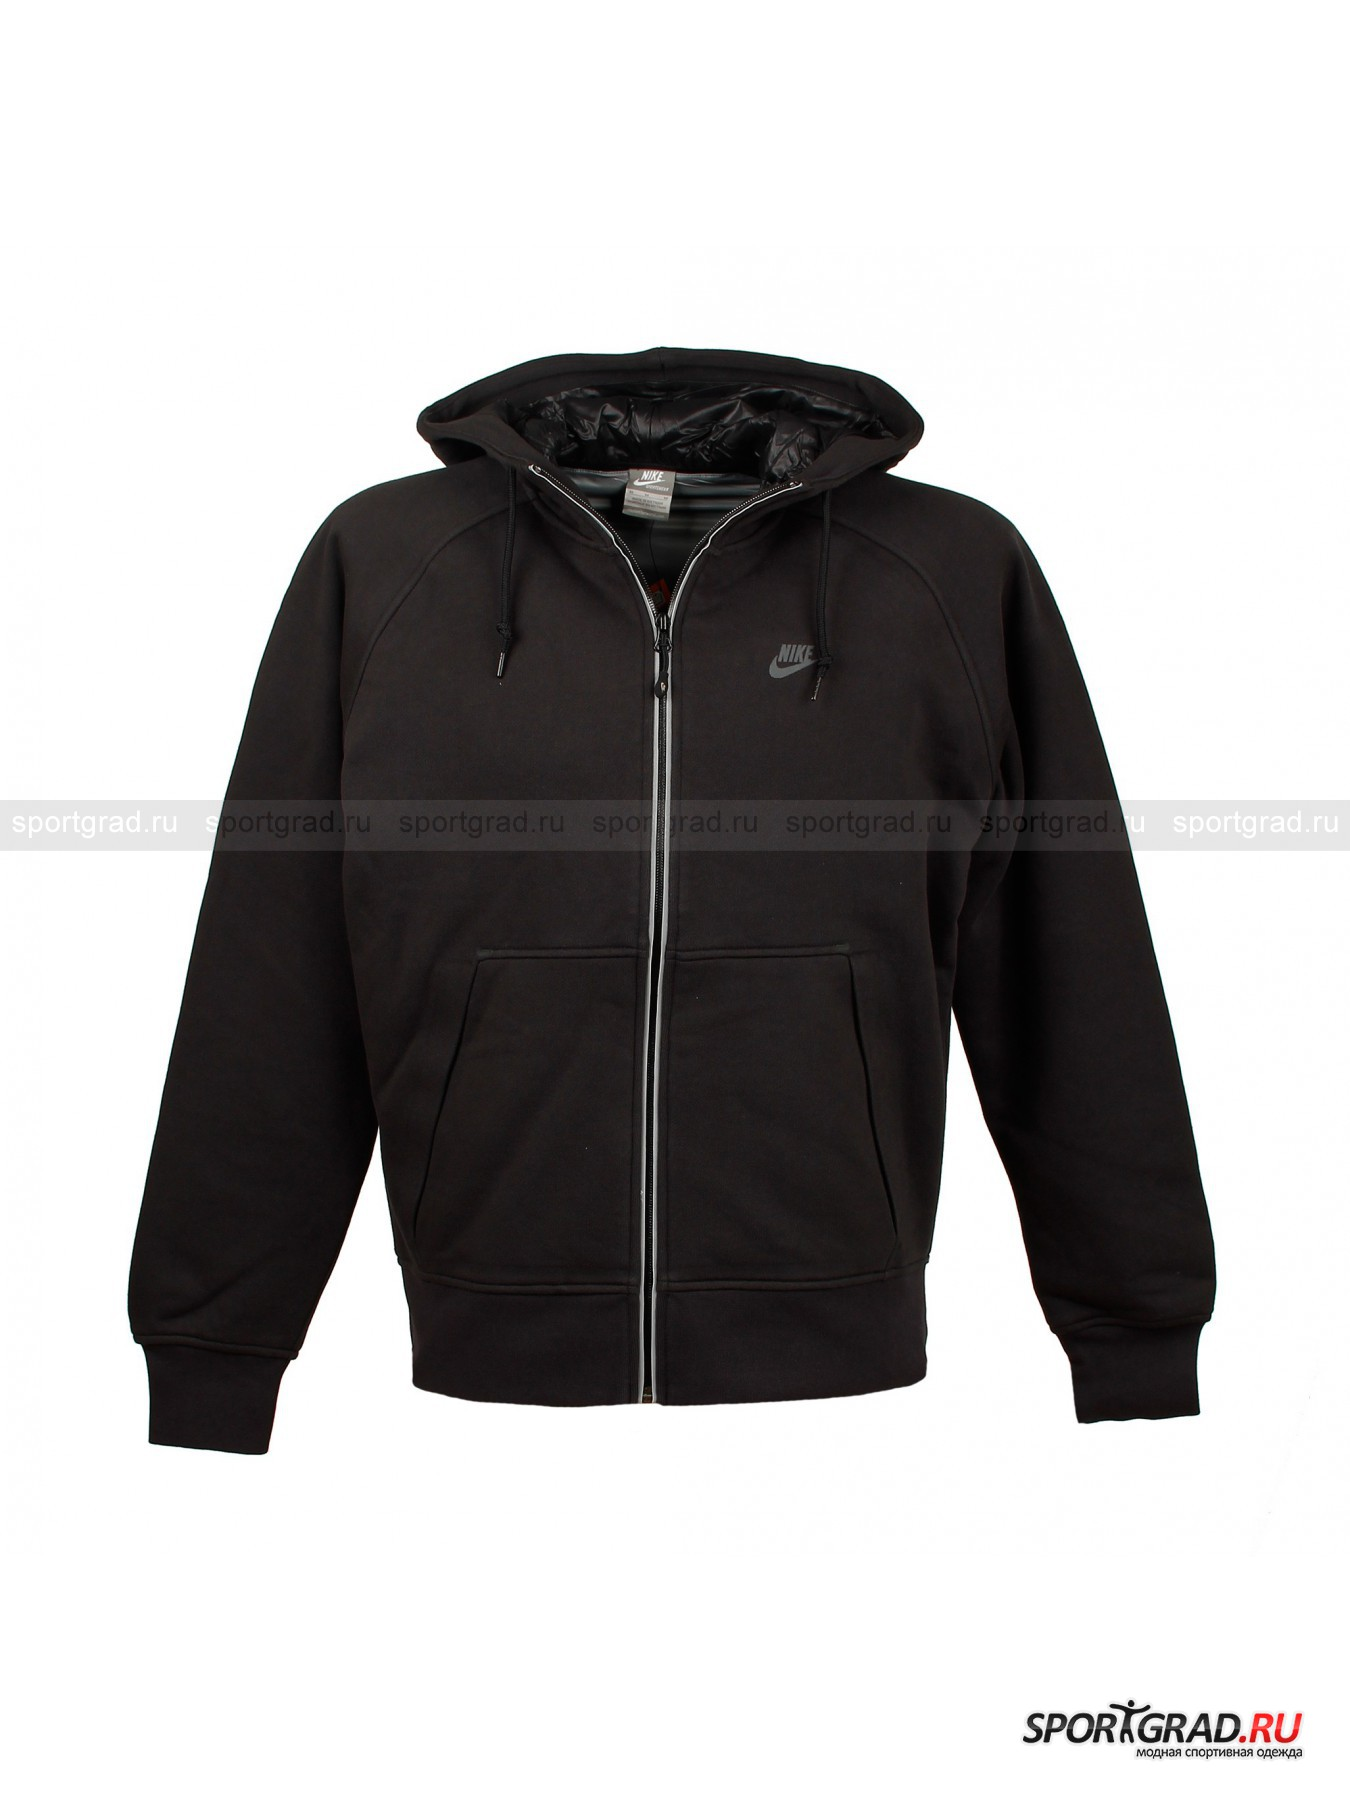 Куртка мужская AW77 DWR WINTERIZED NIKE